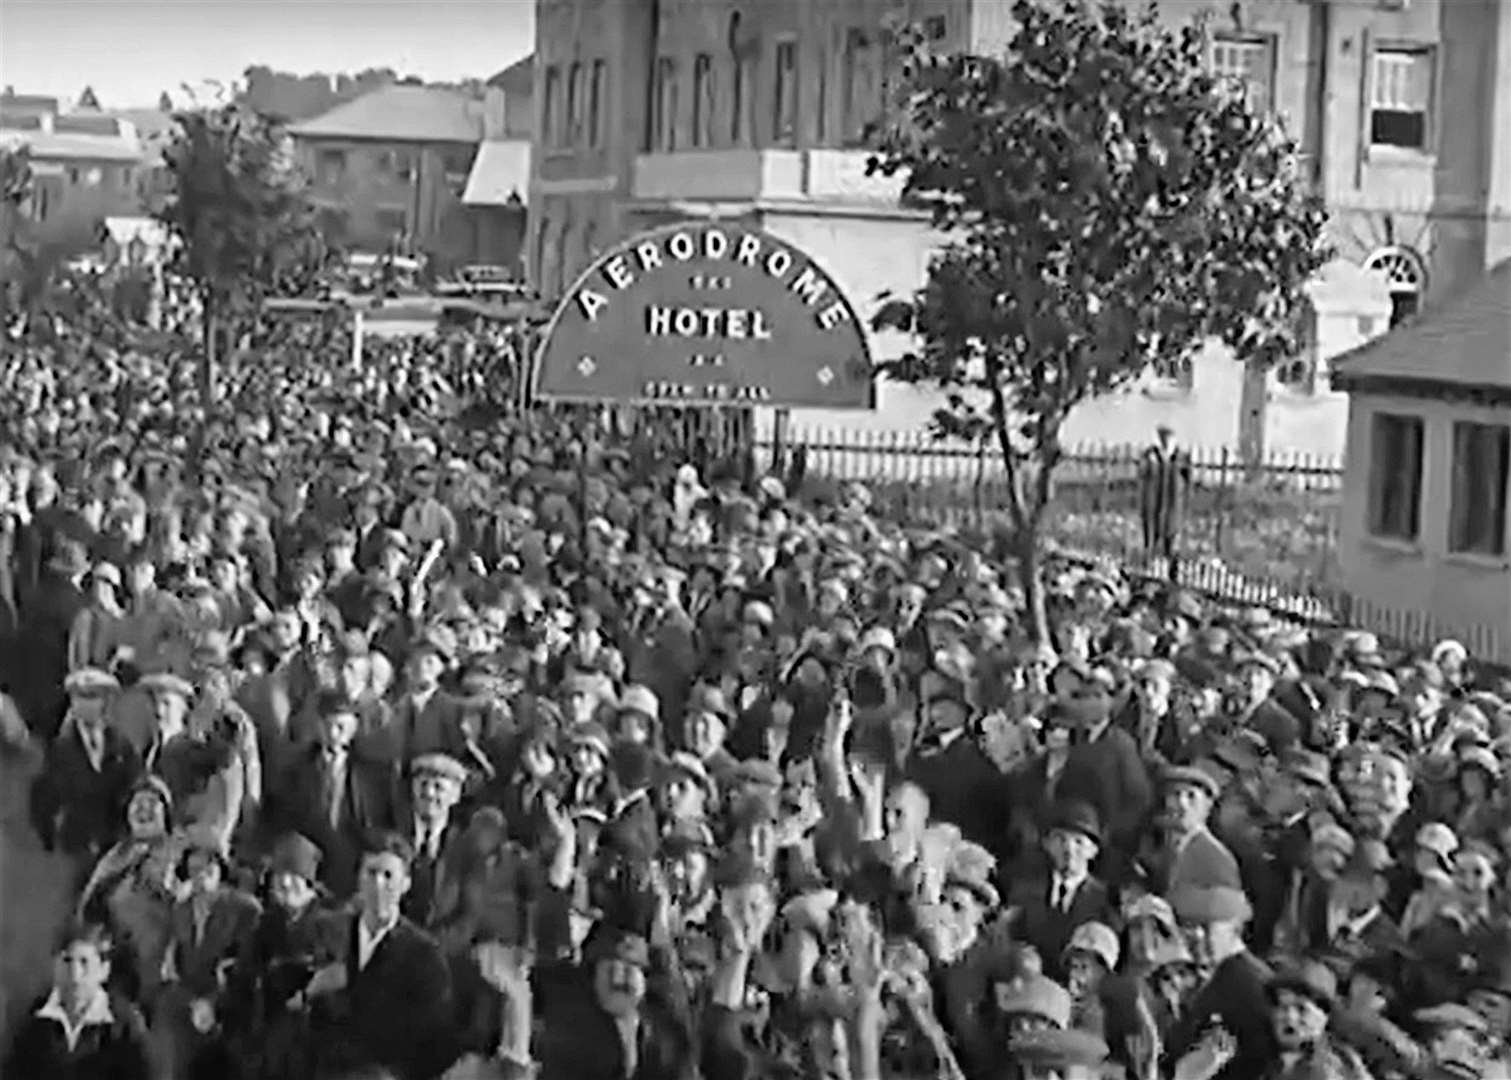 Thousands turned out to see Amy Johnson return home to England. Picture: British Pathe / YouTube